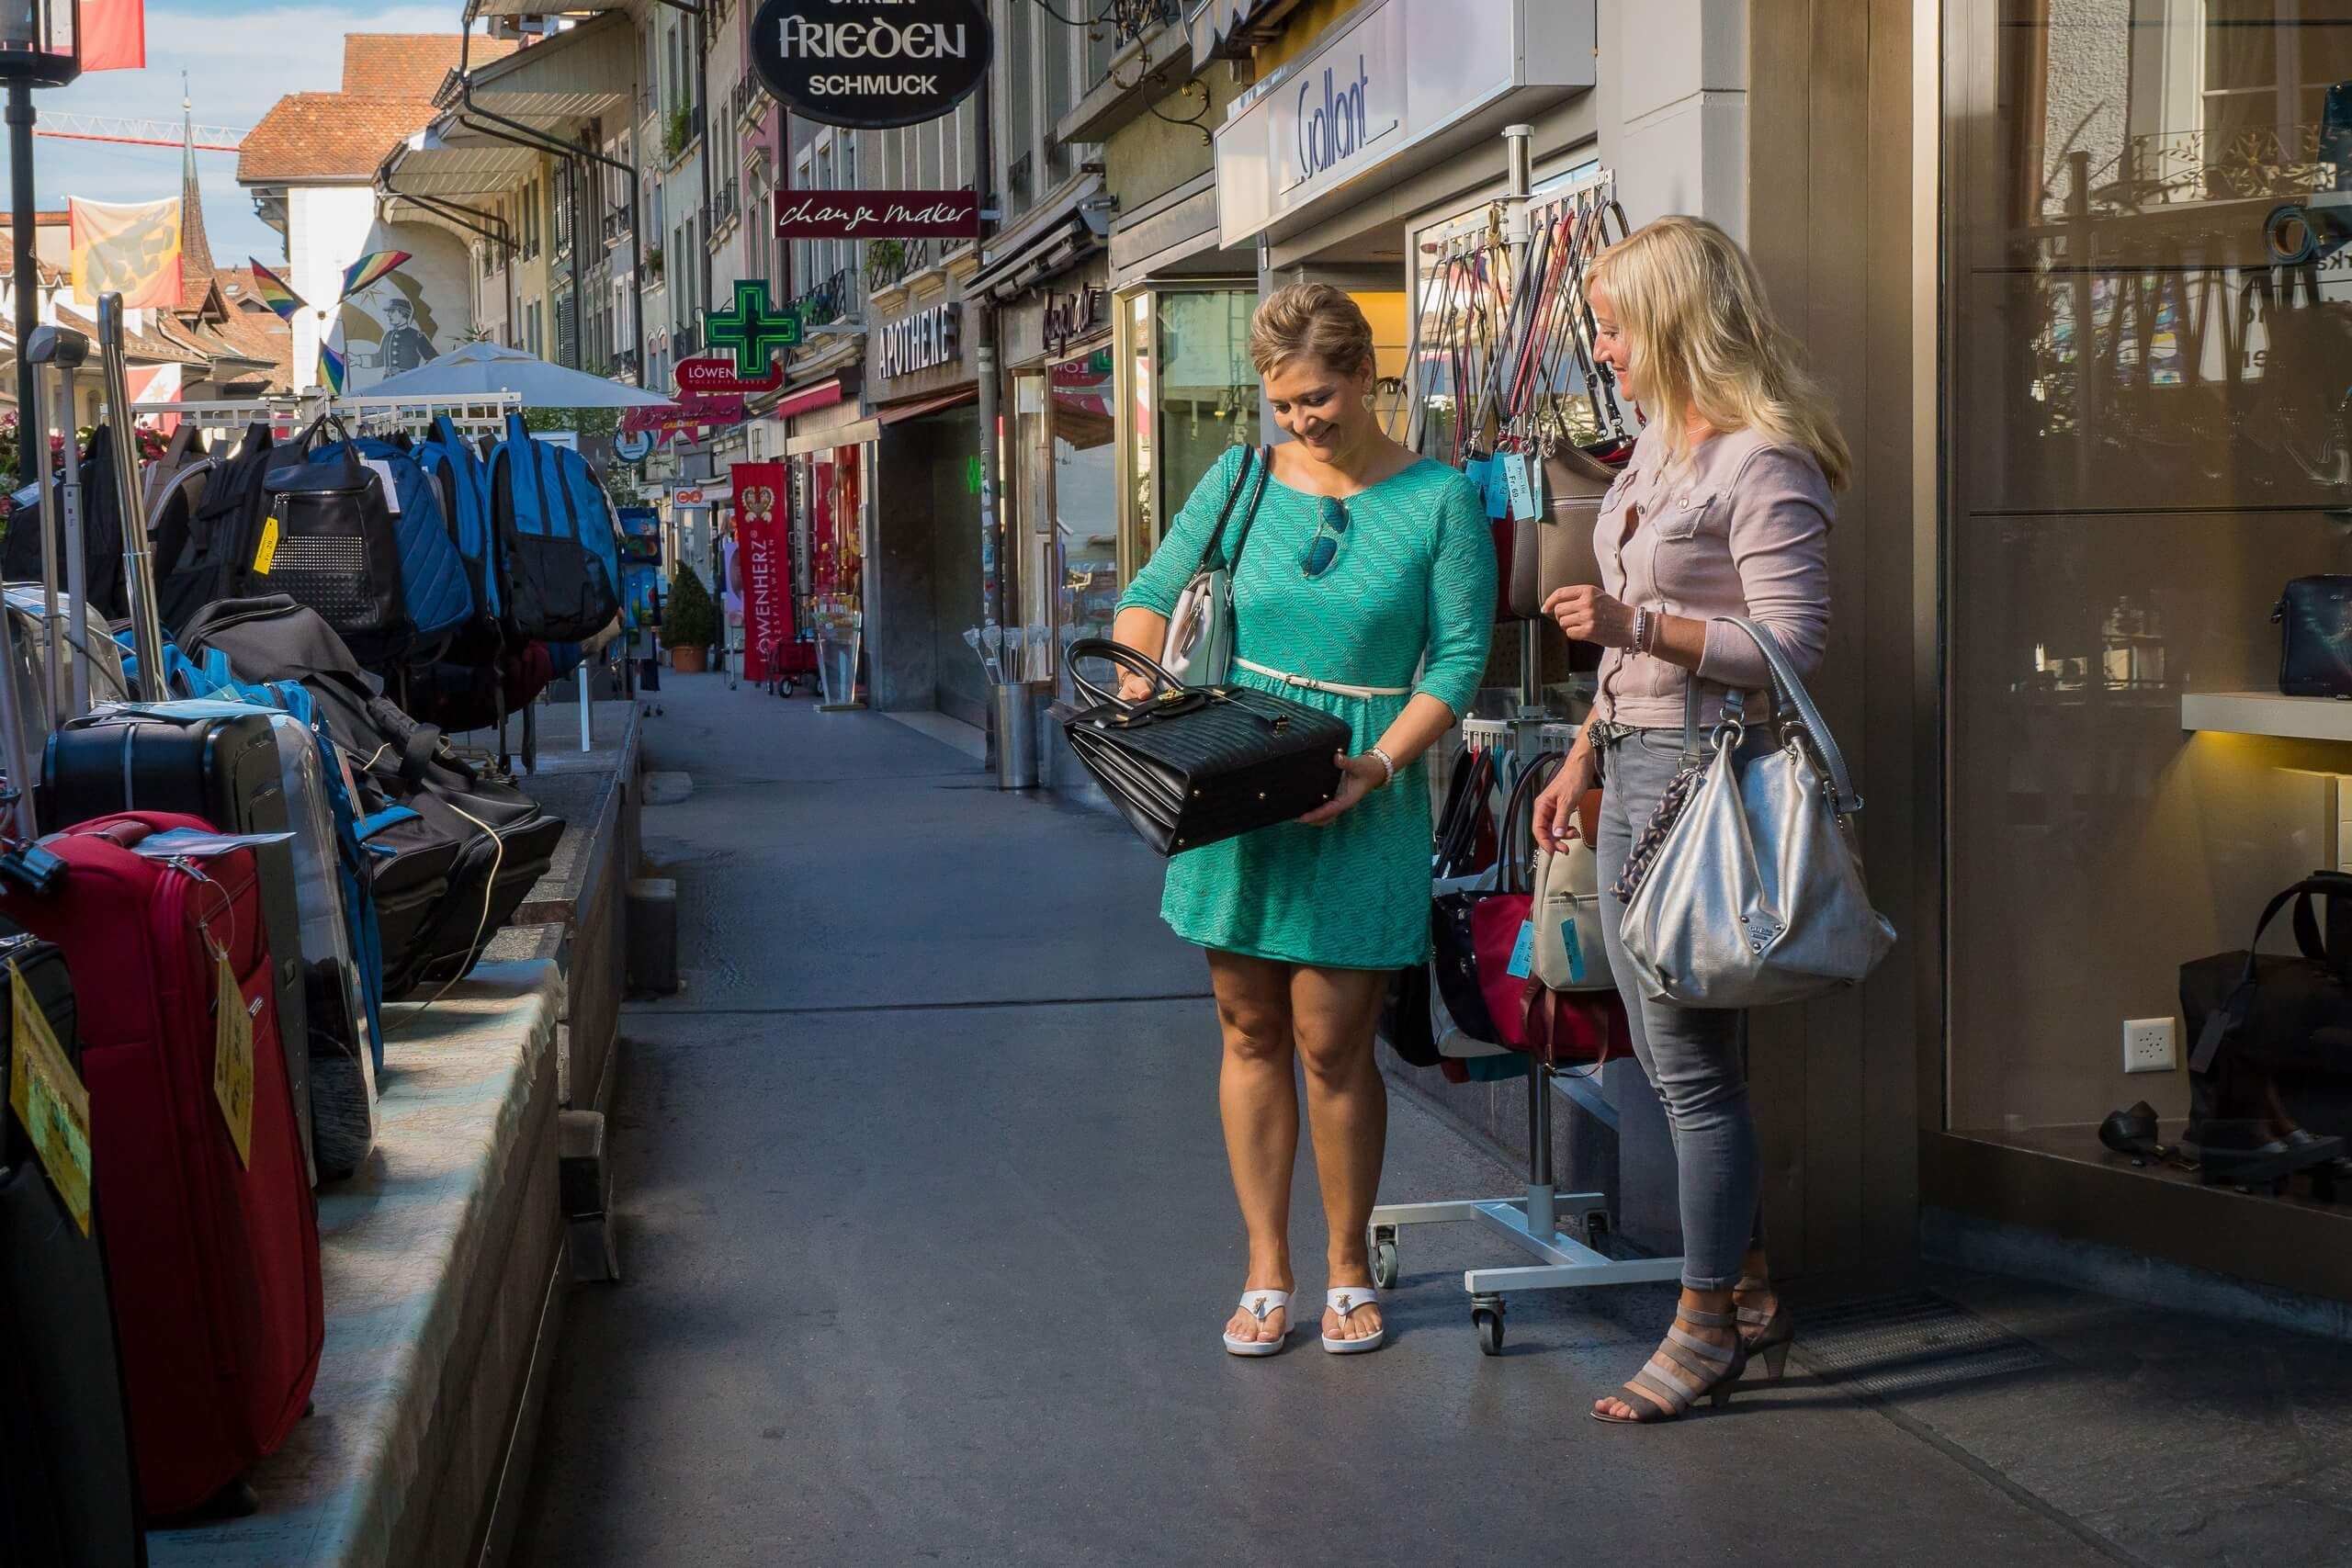 thun-altstadt-shopping-laden-sommer